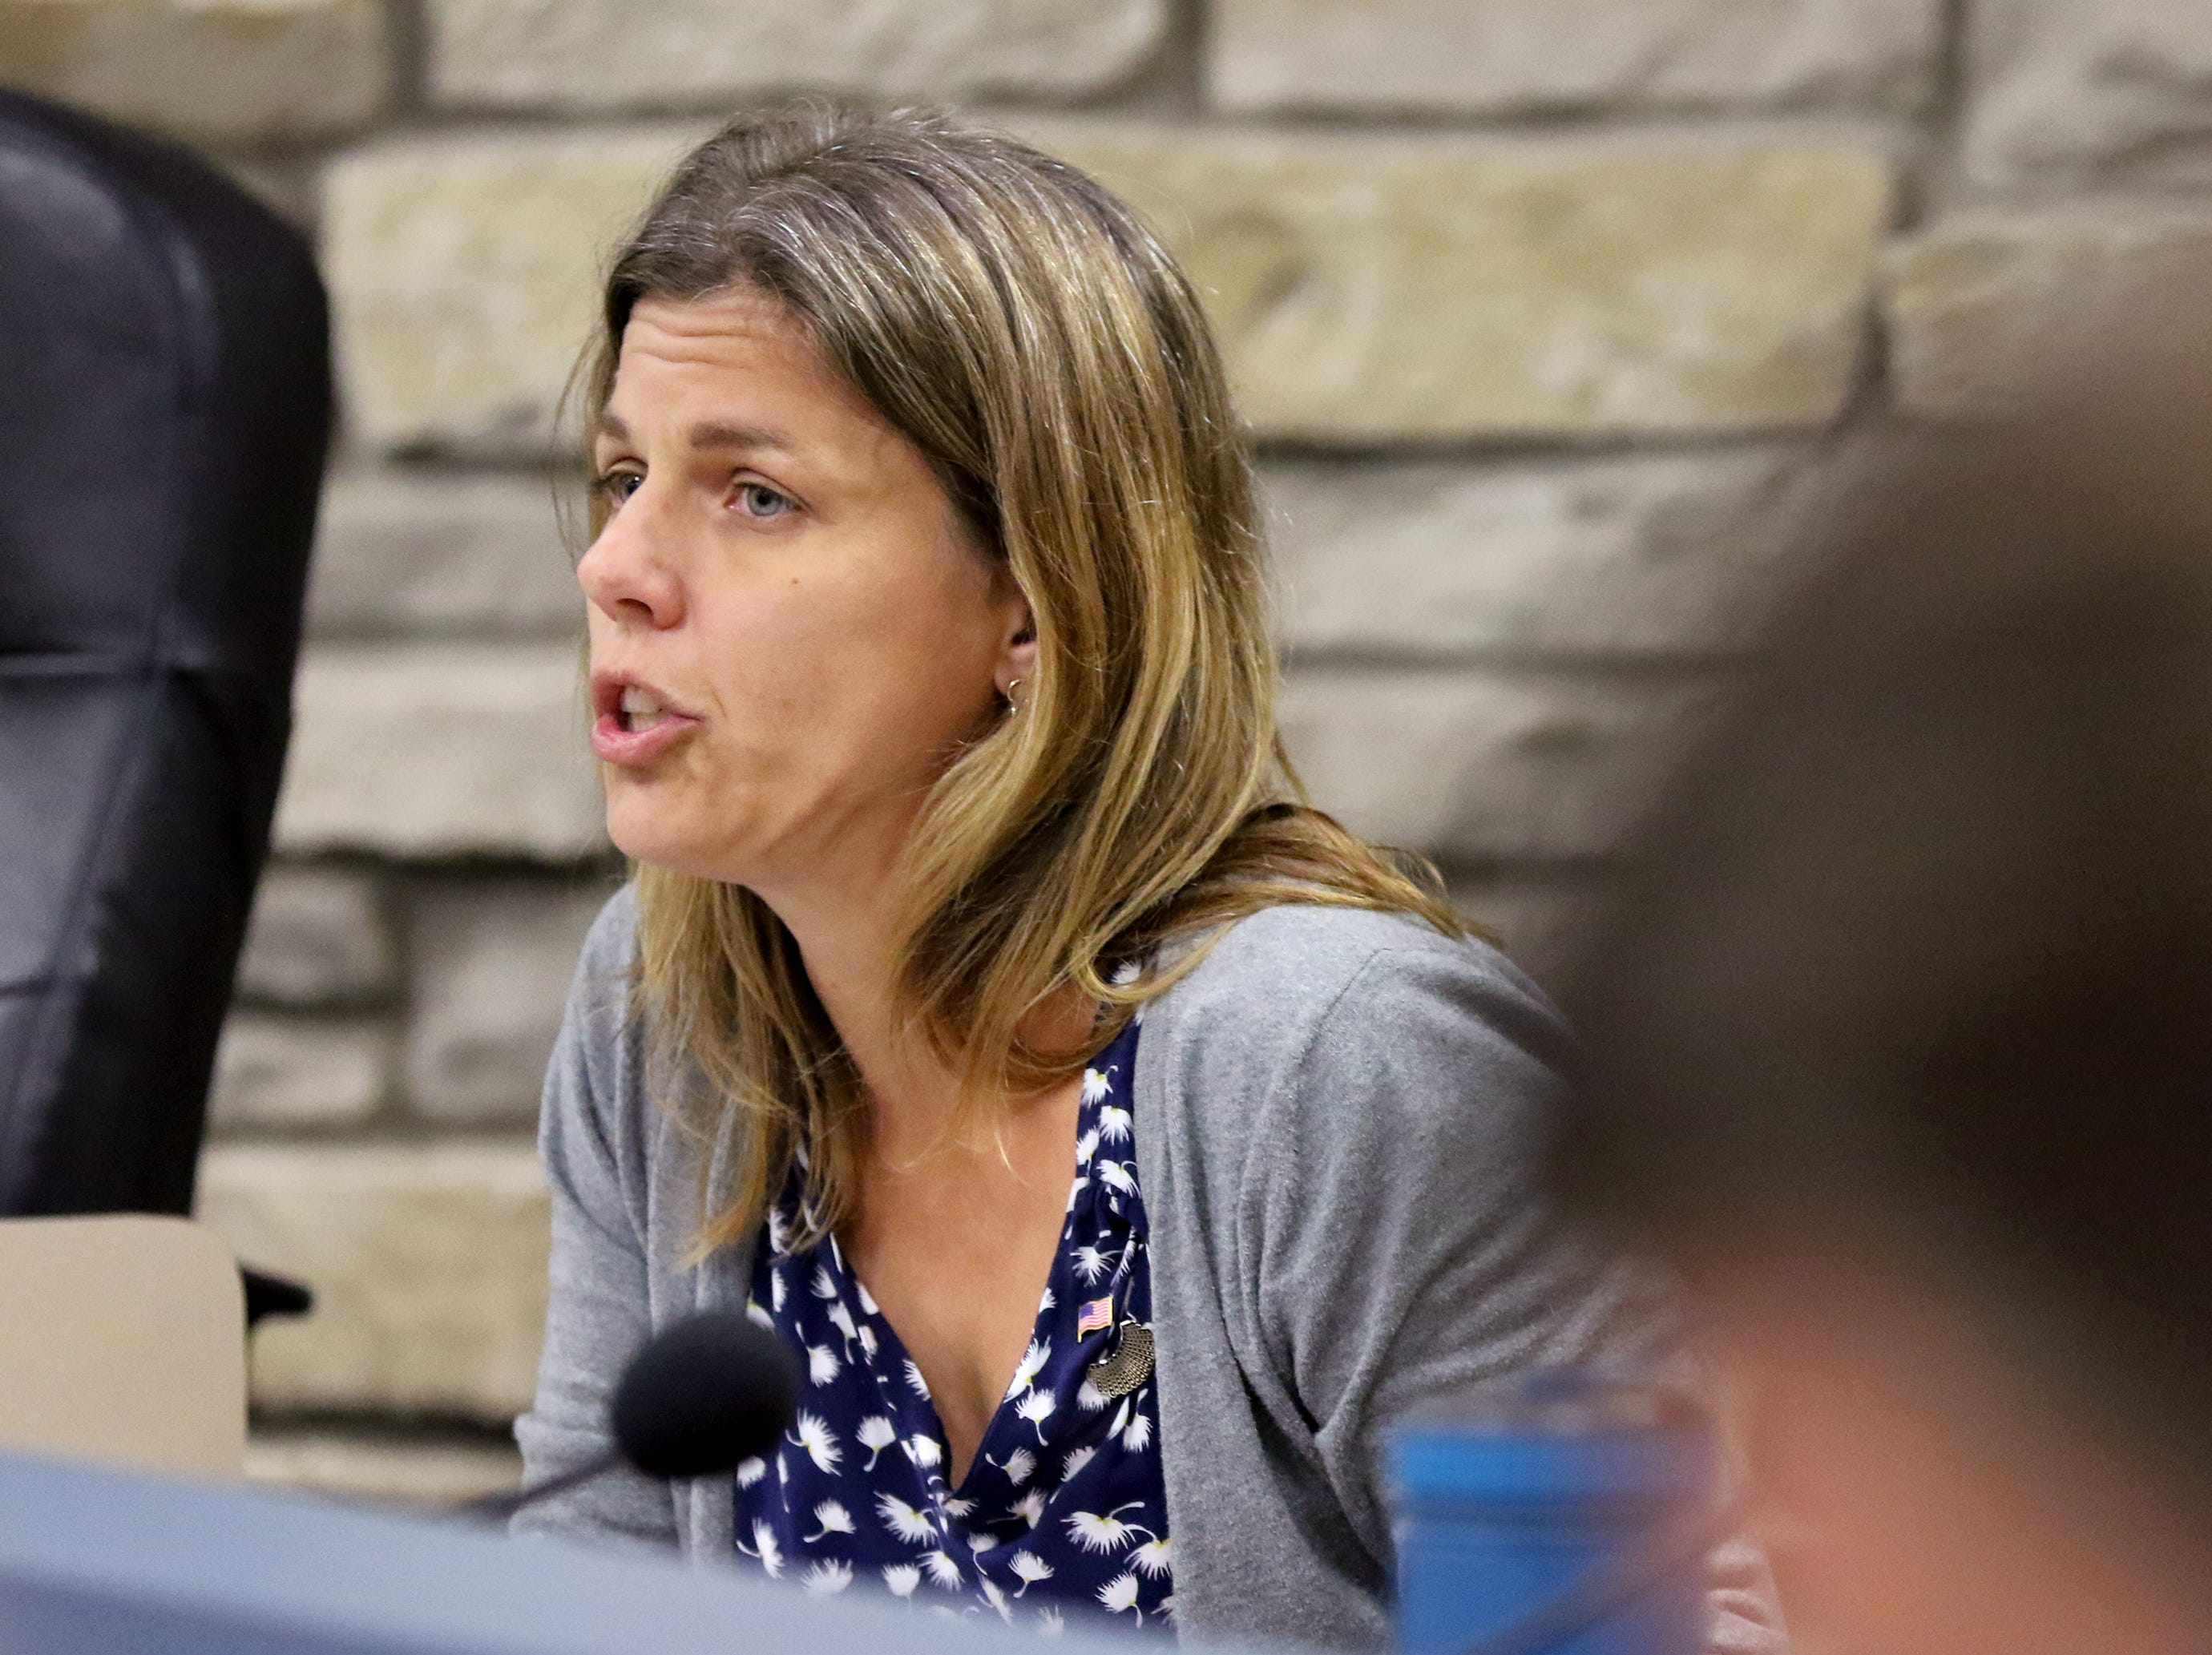 Alderwoman Heather Kuhl outlines her proposal for Wauwatosa to be considered a sanctuary city during Wauwatosa's Government Affairs Committee on Sept. 11.